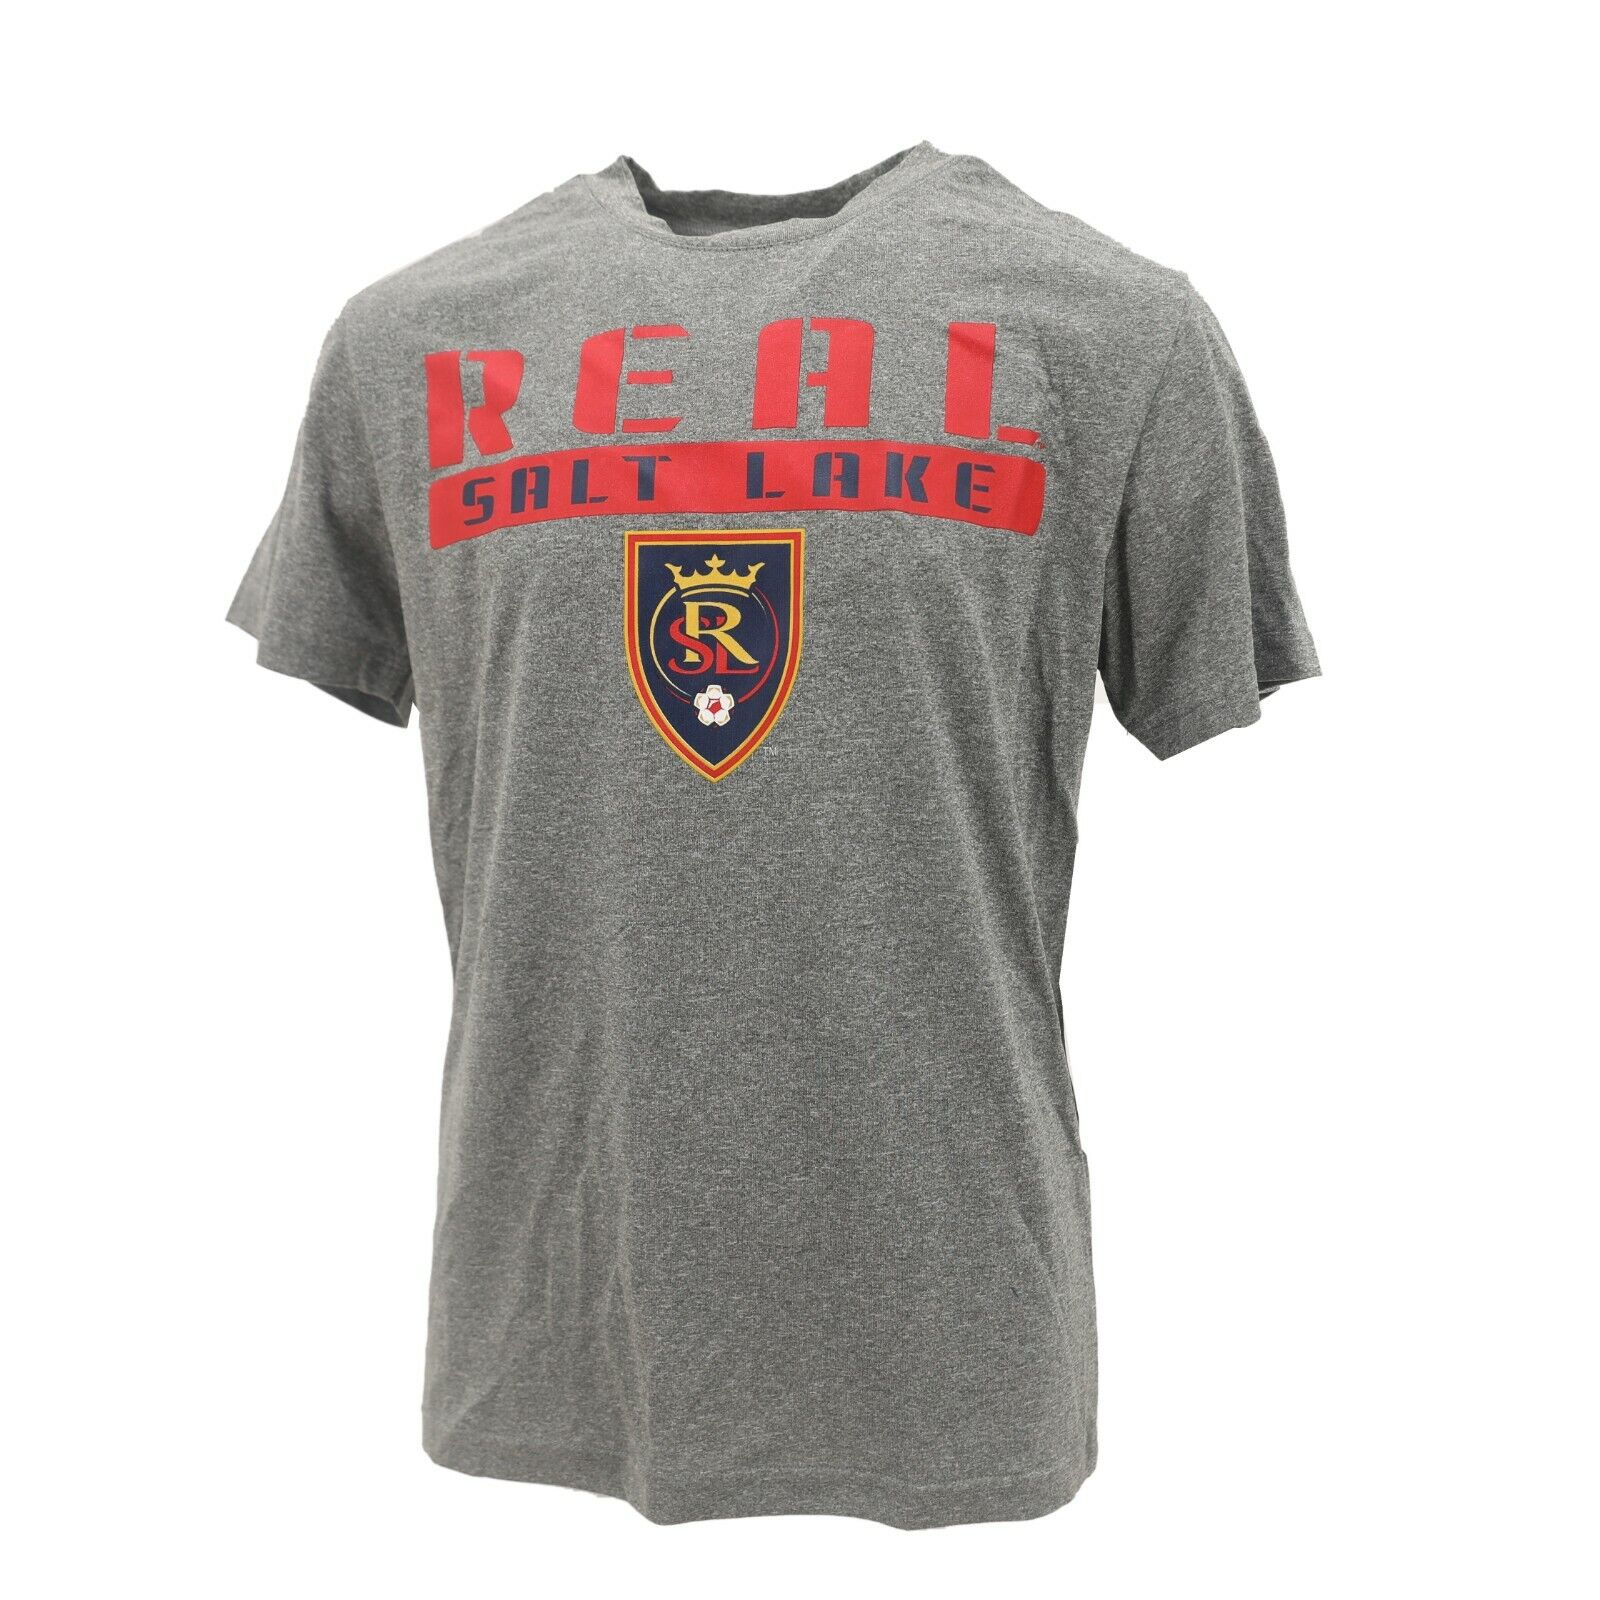 quality design c0fb6 4651d Details about Real Salt Lake Official MLS Apparel Kids Youth Size Athletic  T-Shirt New Tags